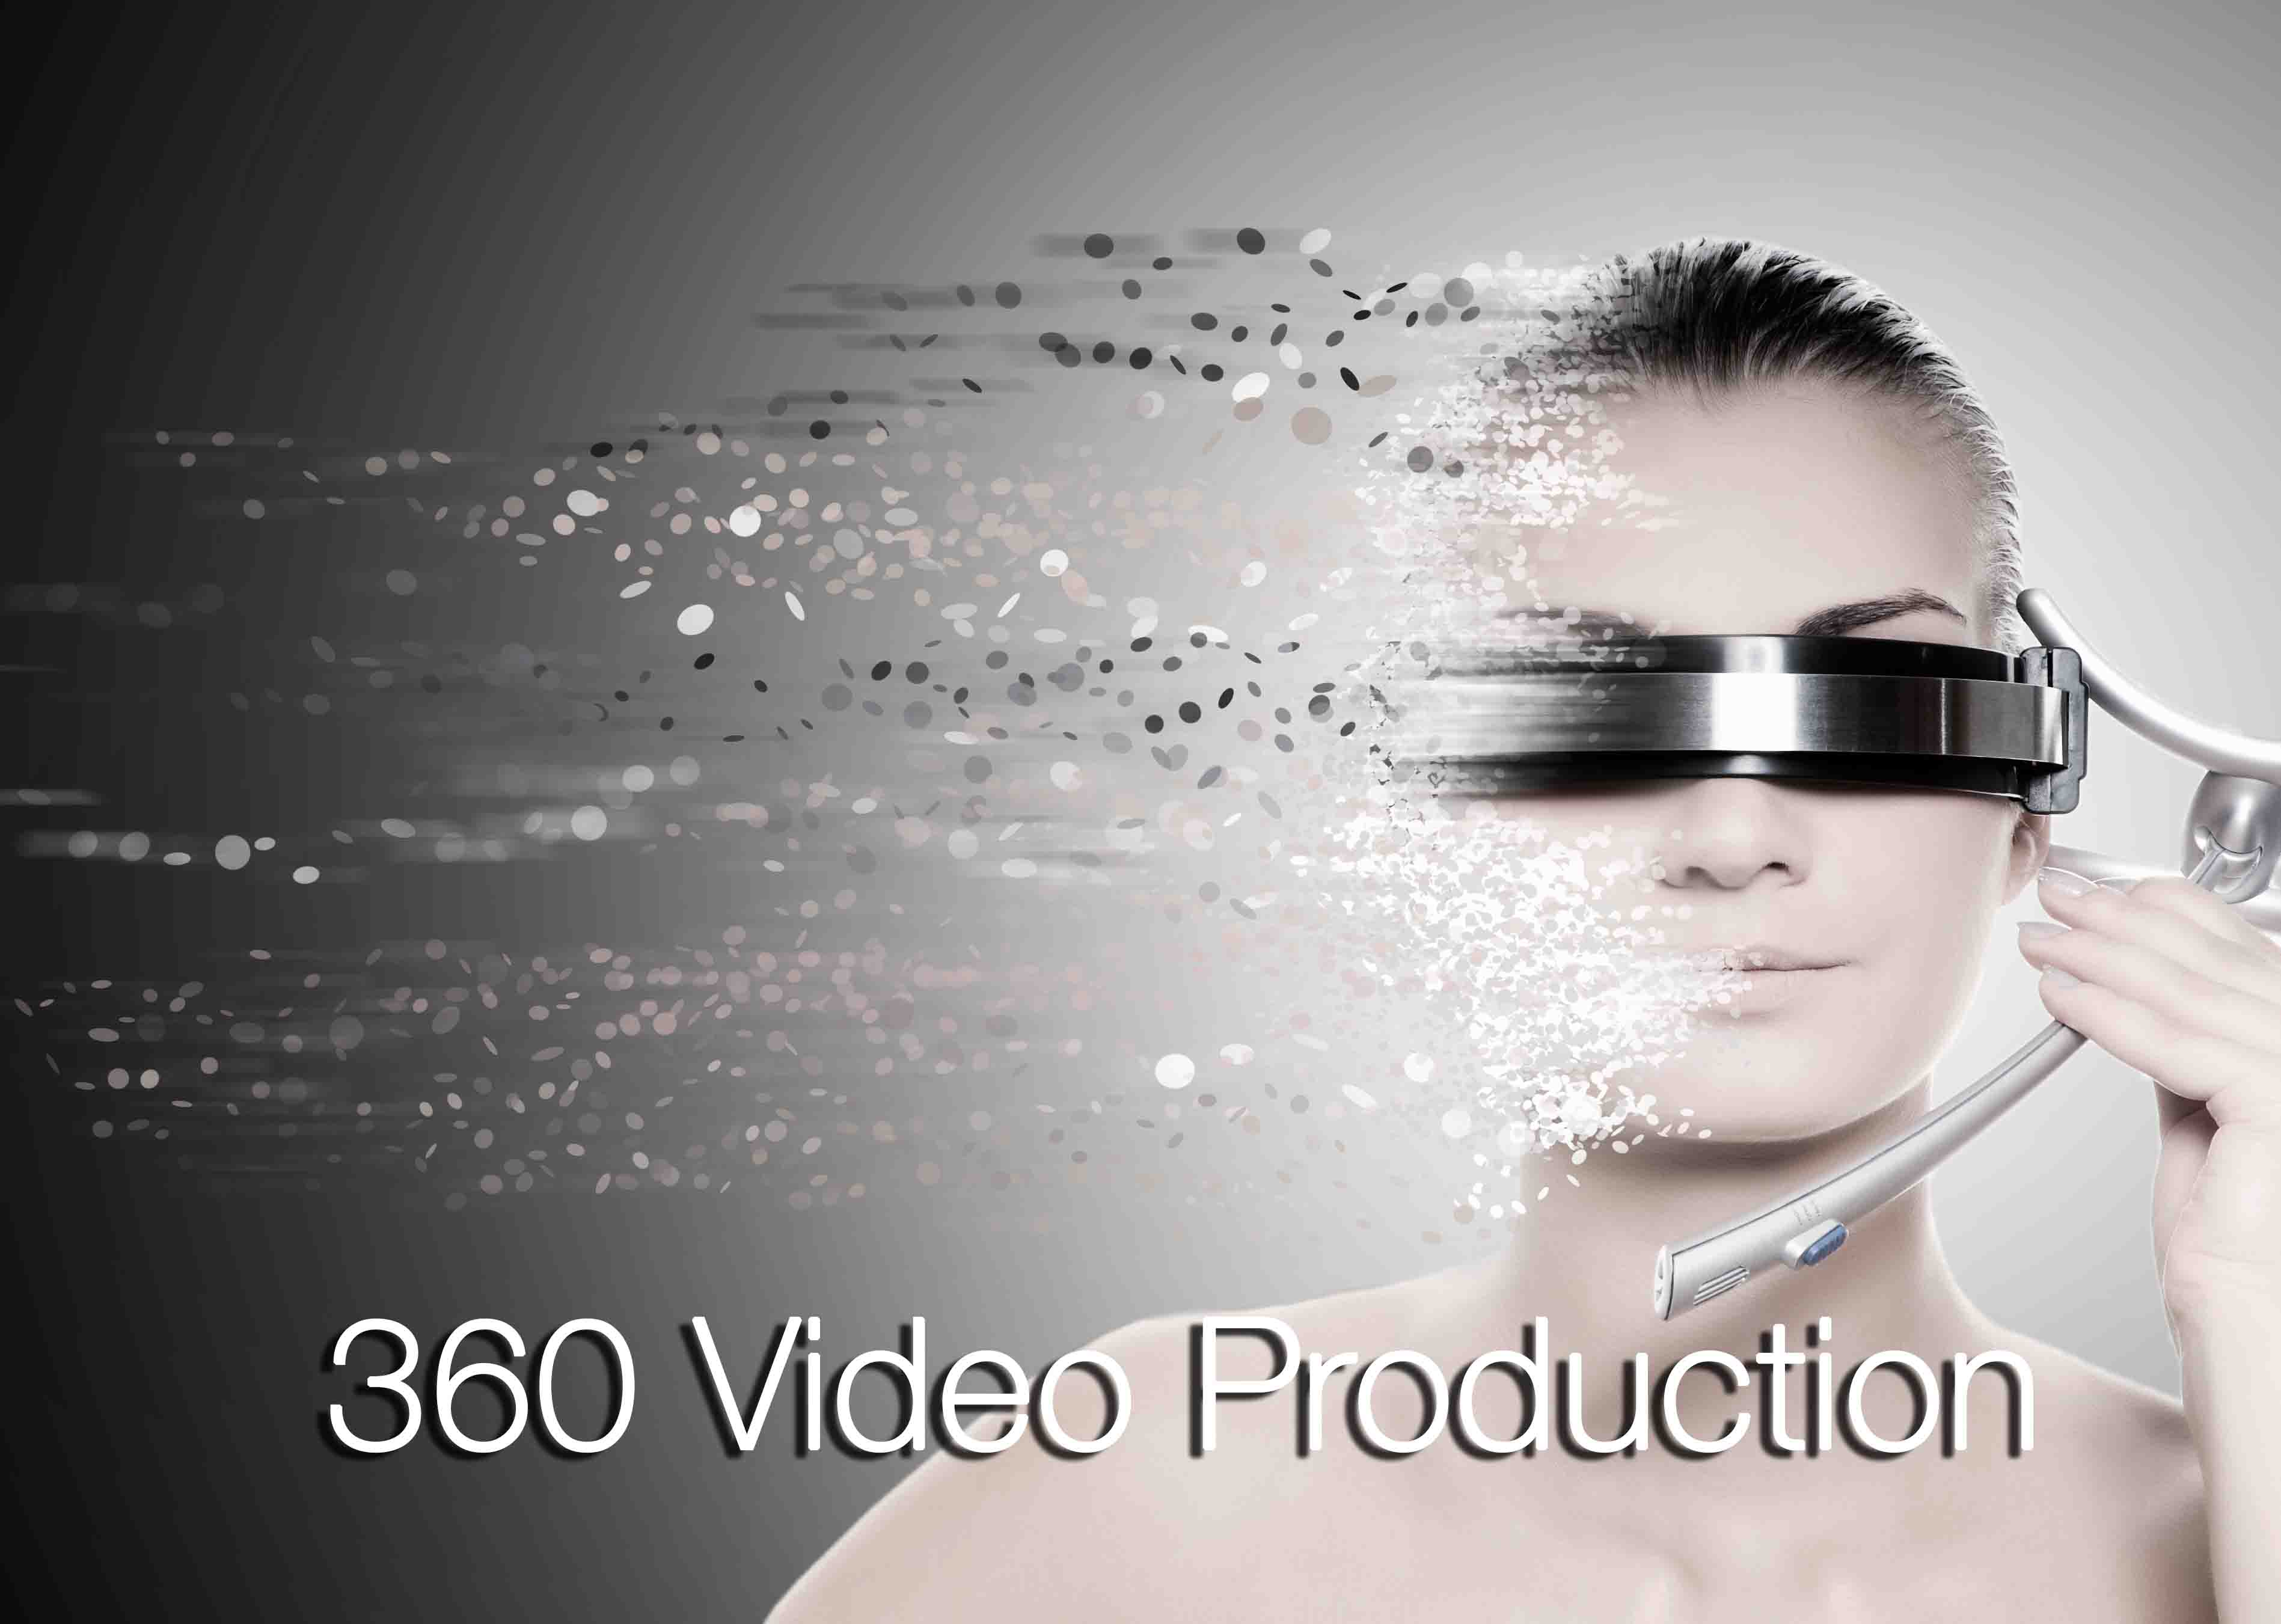 360 Video Production - beautiful model - futuristic